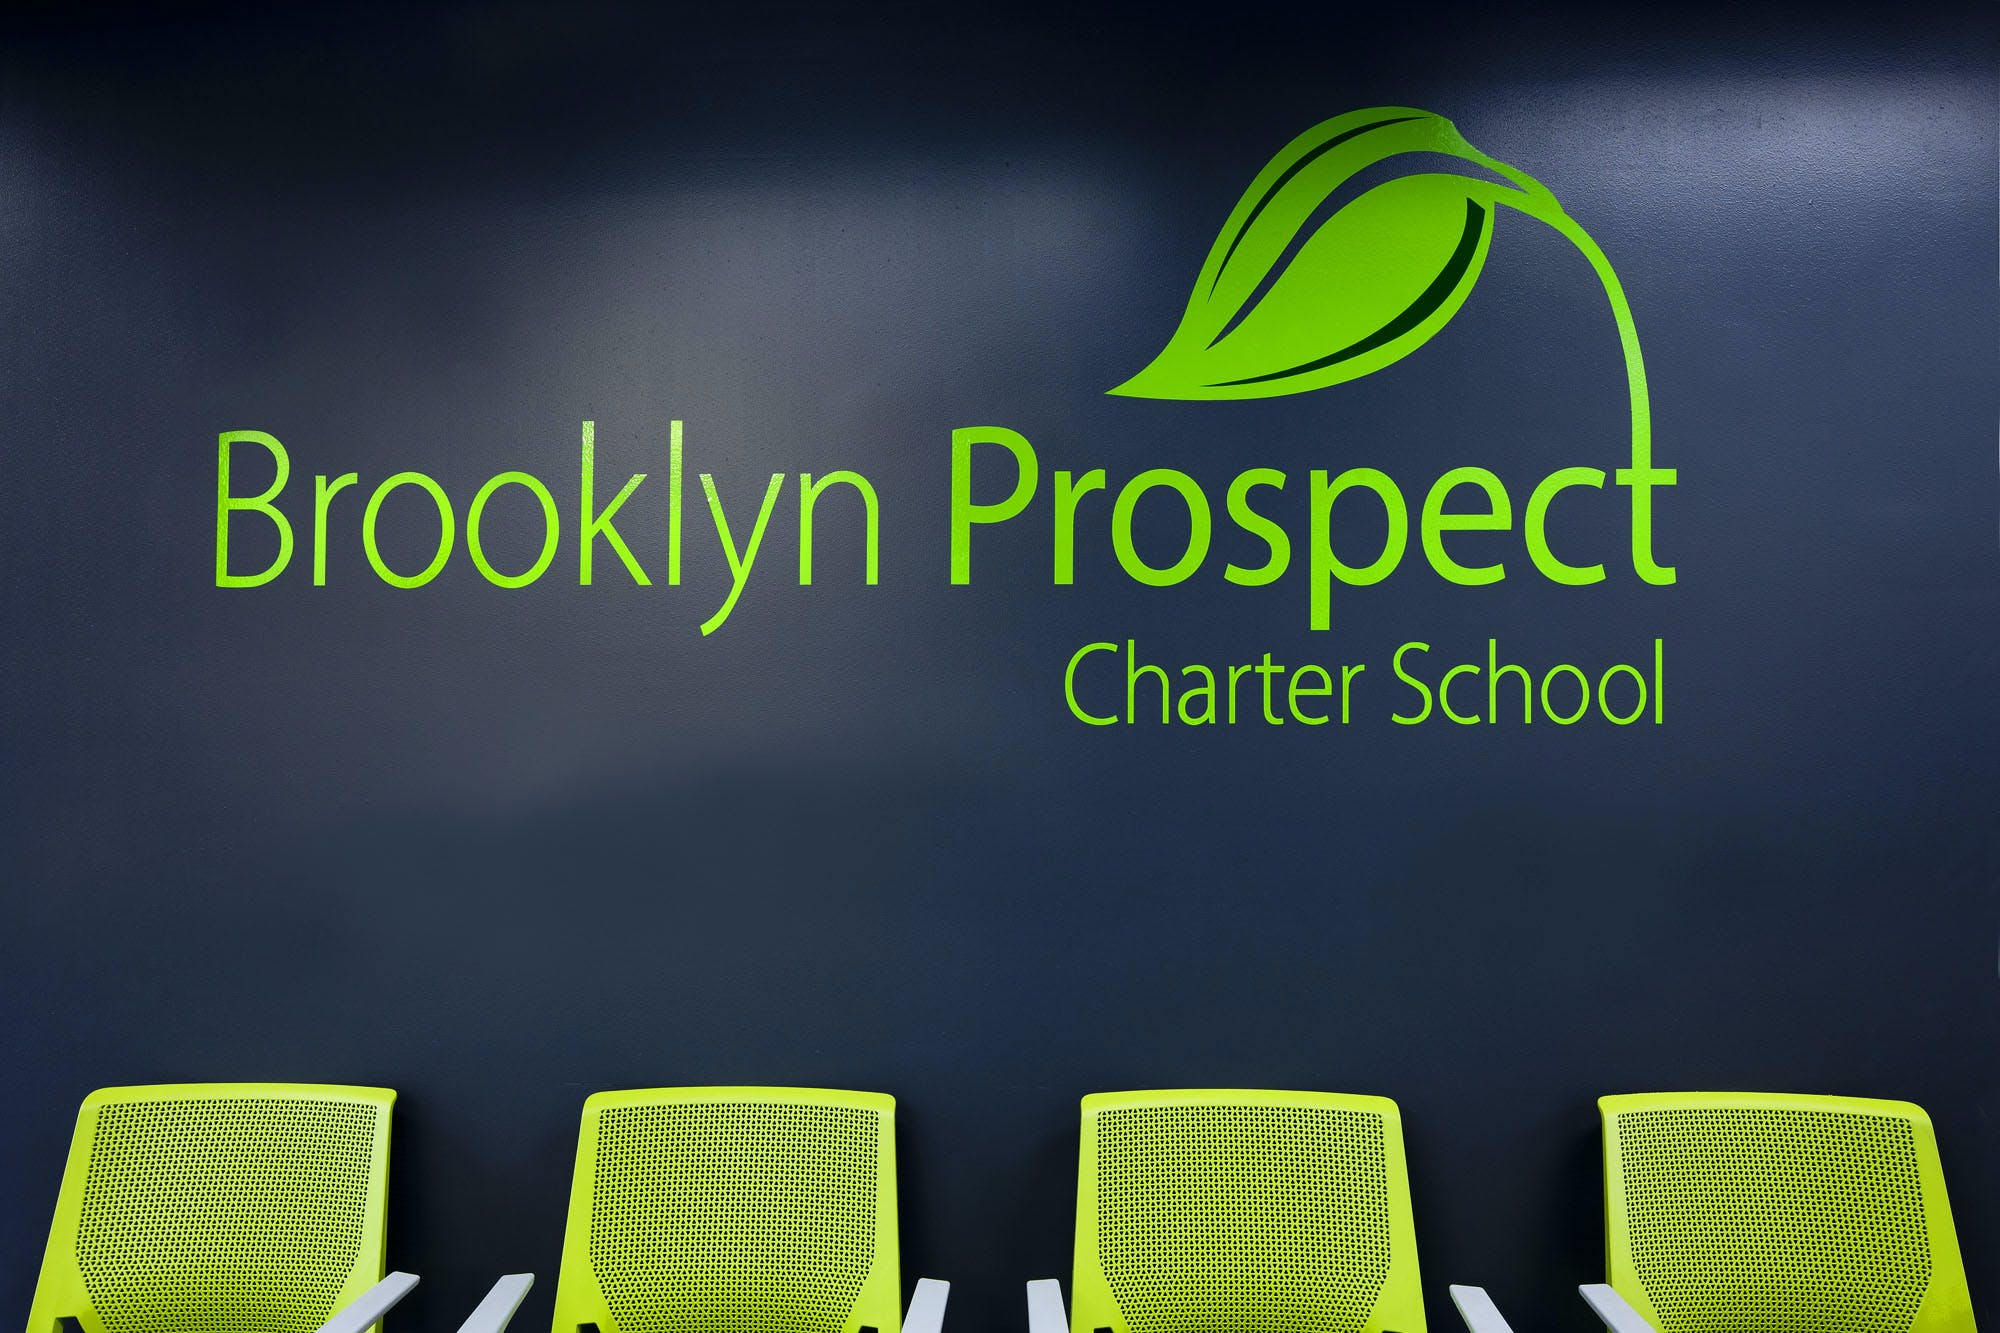 brooklyn prospect middle and high schools loci architecture